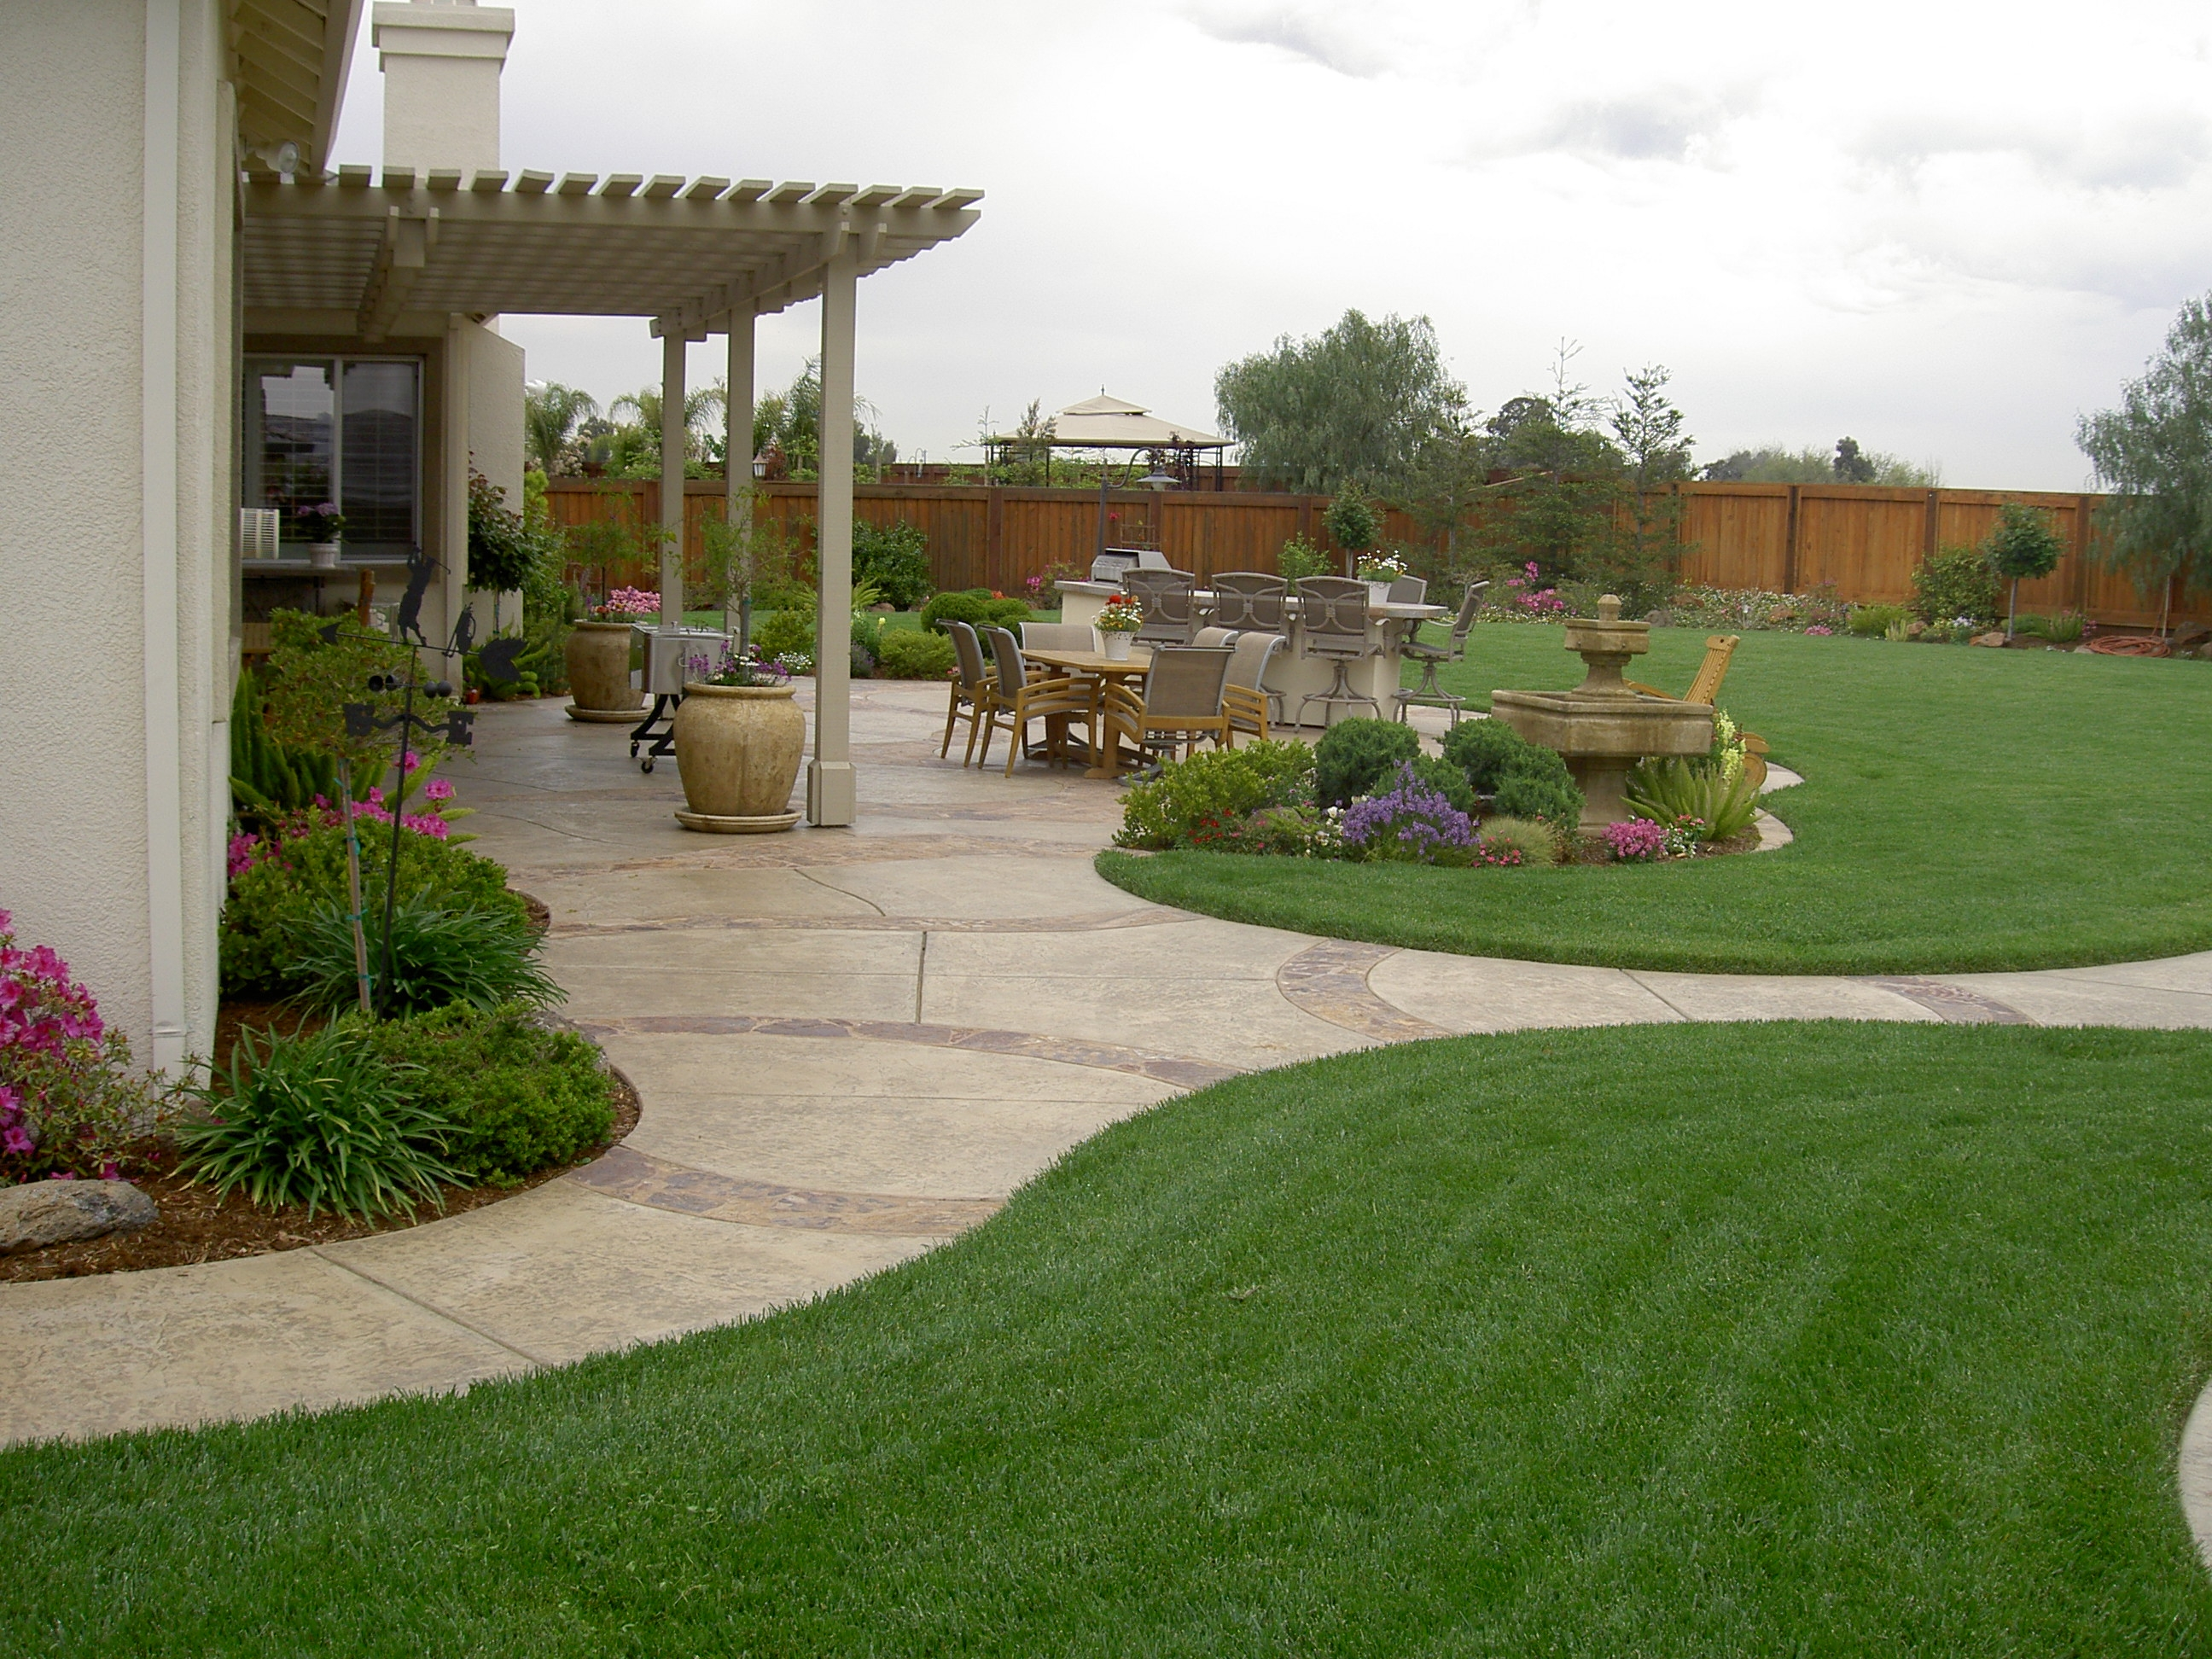 backyard landscape plans backyard landscape designs - Backyard Landscape Design Ideas